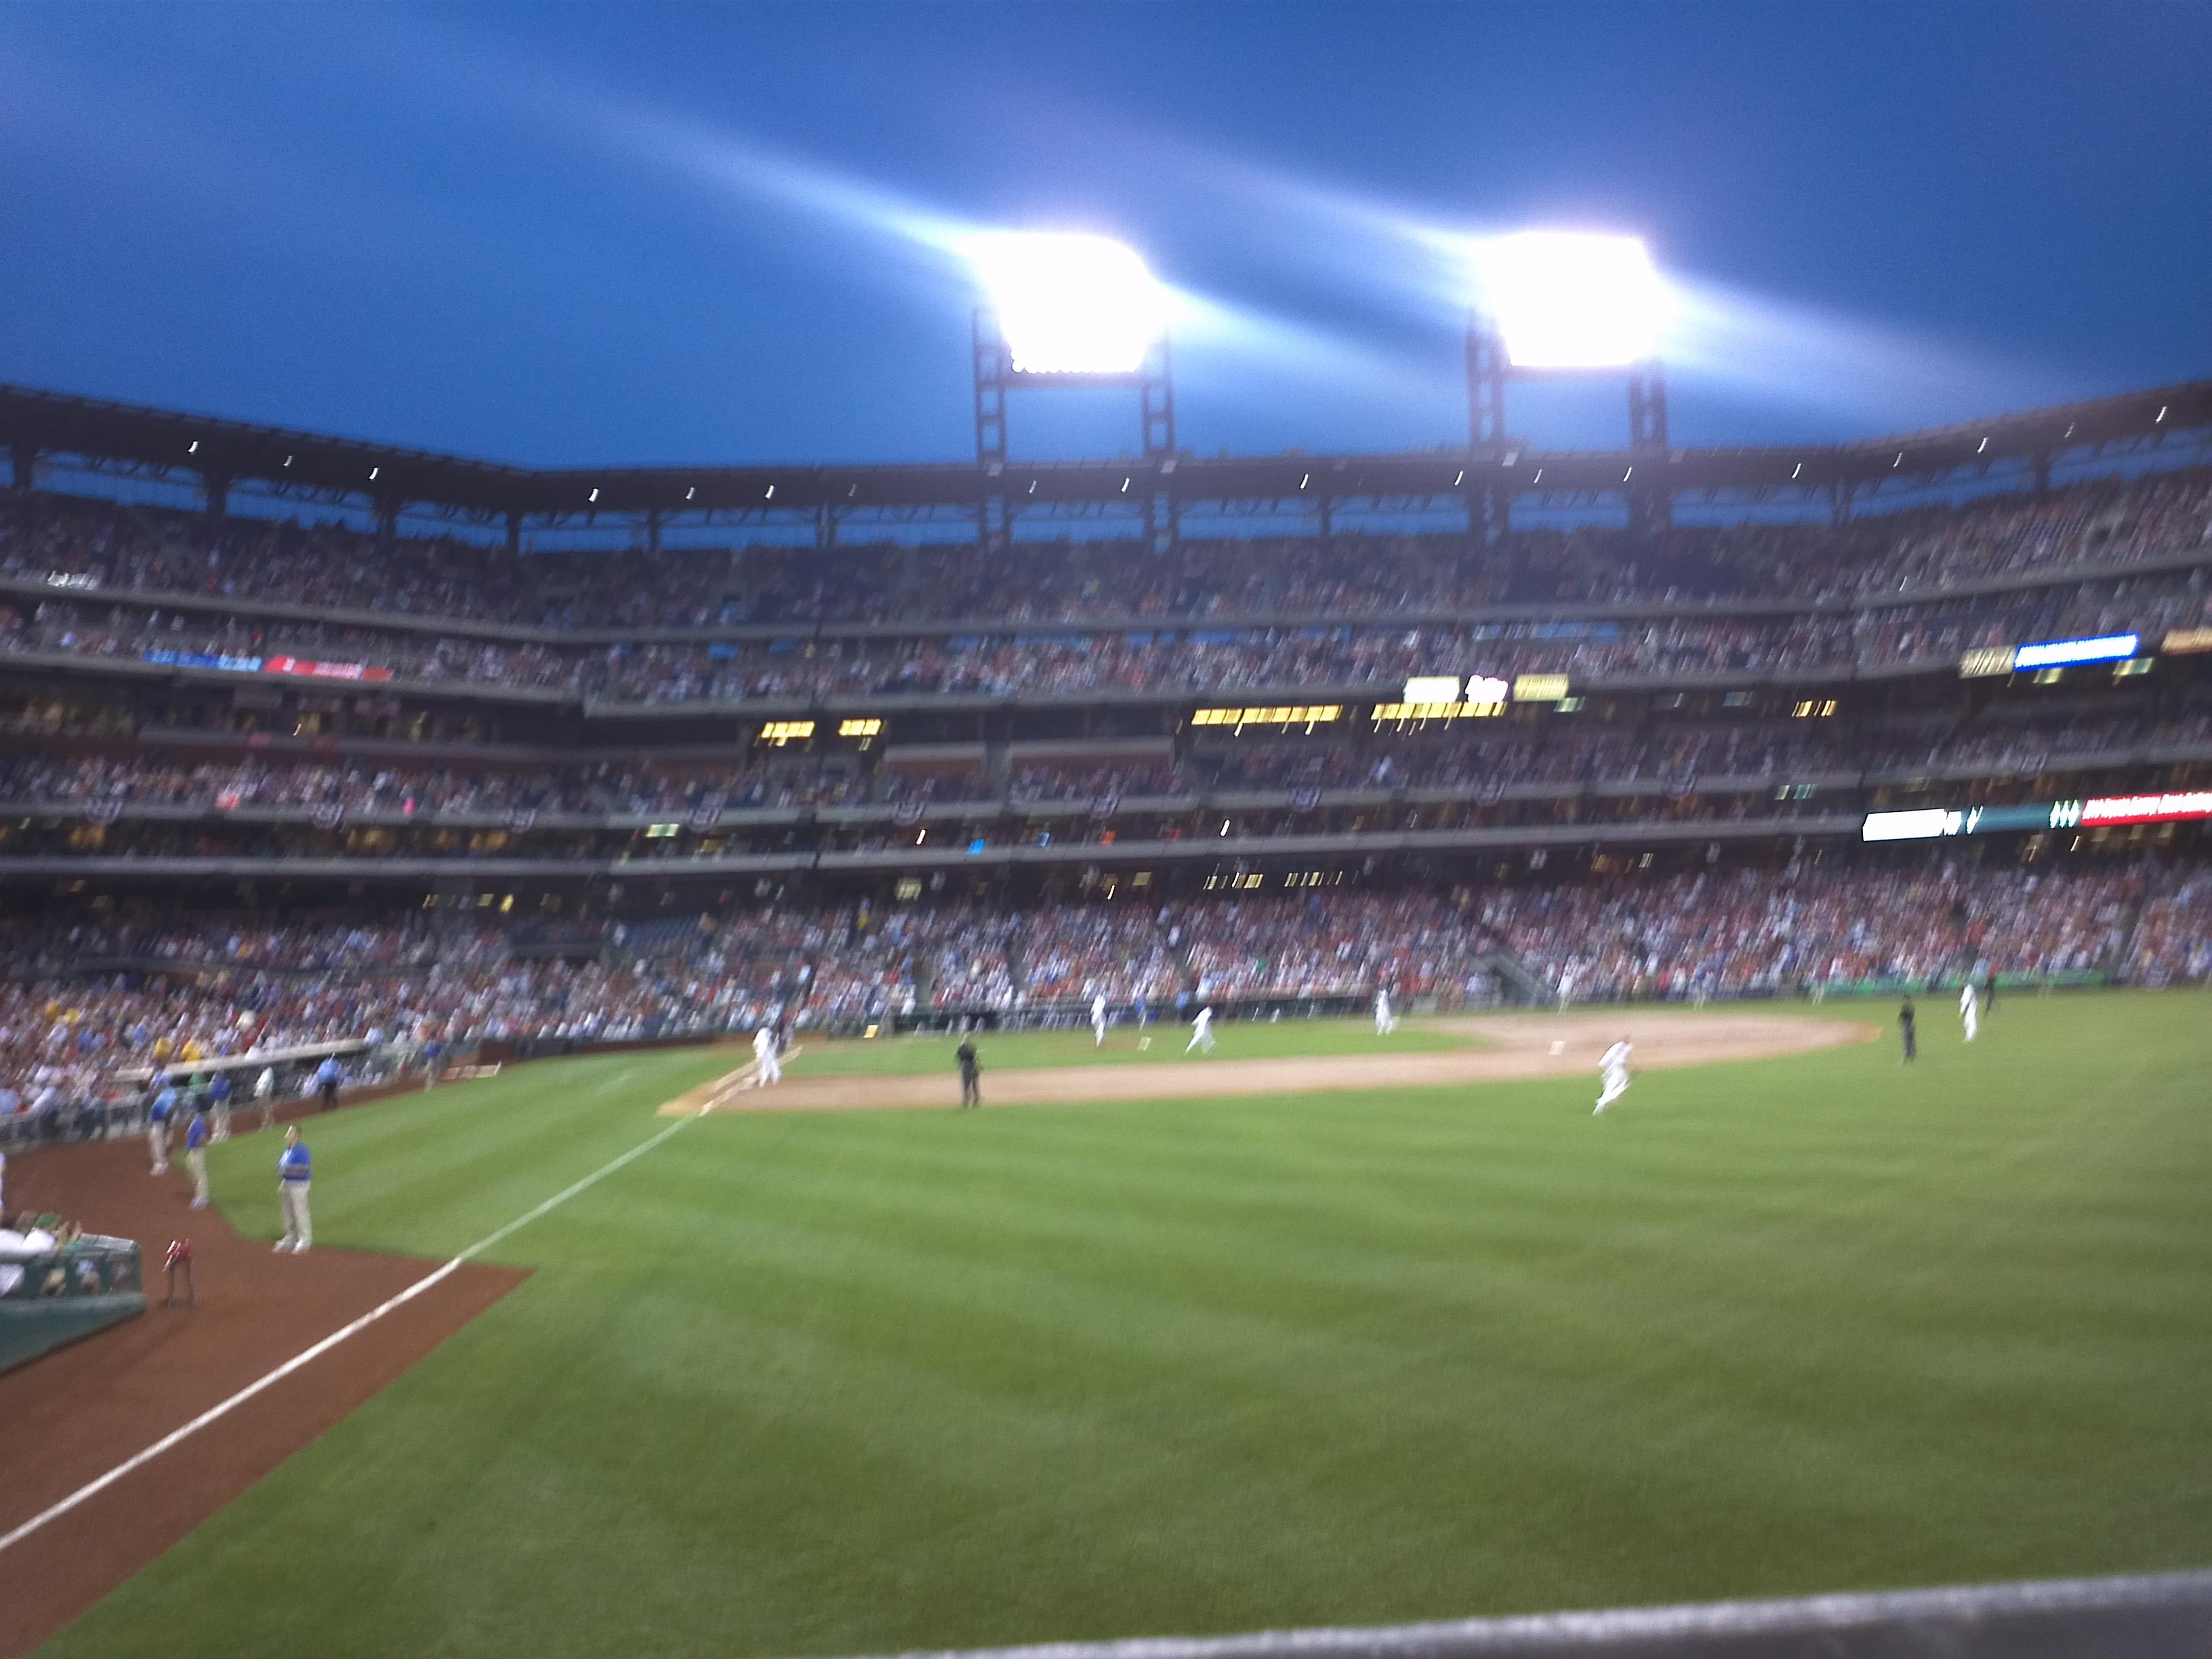 Citizens Bank Park Section 106 Row 1 Seat 9